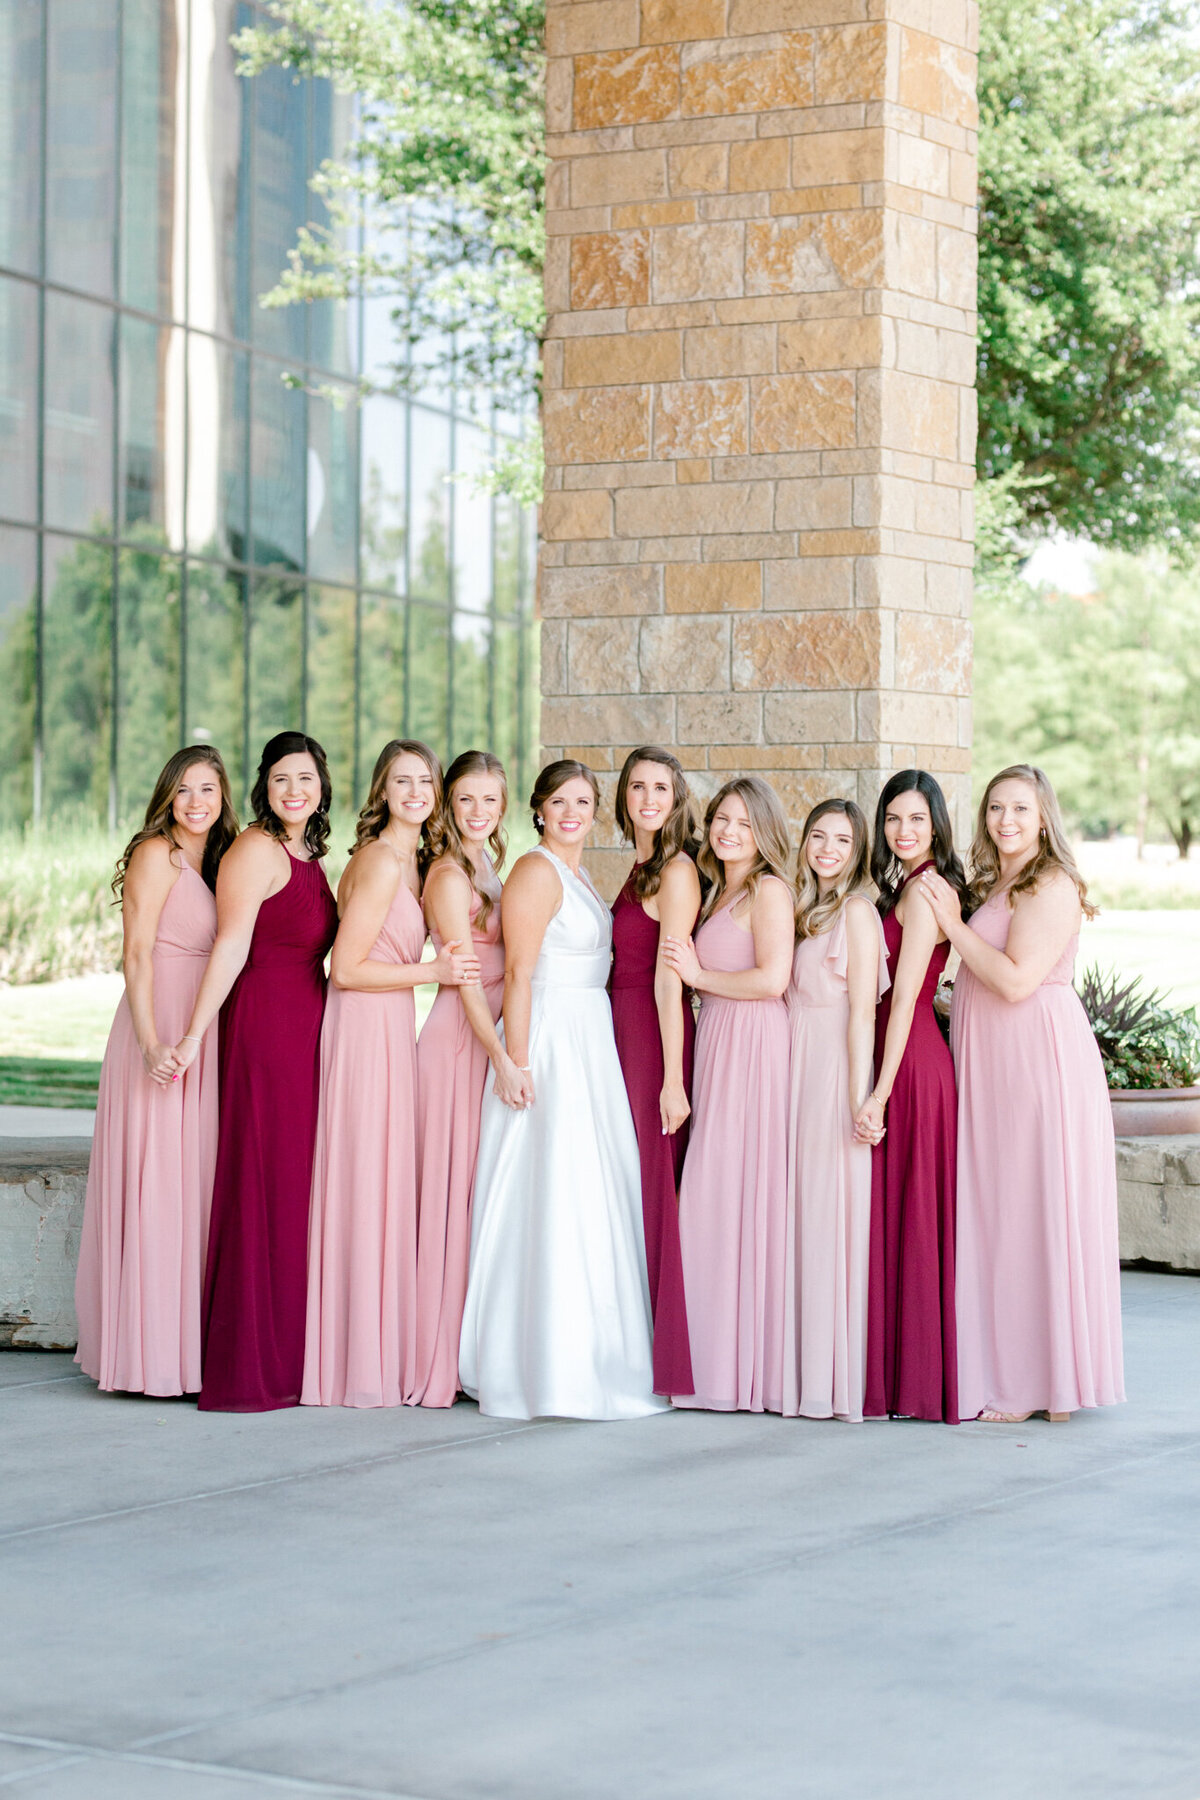 Kaylee & Michael's Wedding at Watermark Community Church | Dallas Wedding Photographer | Sami Kathryn Photography-82